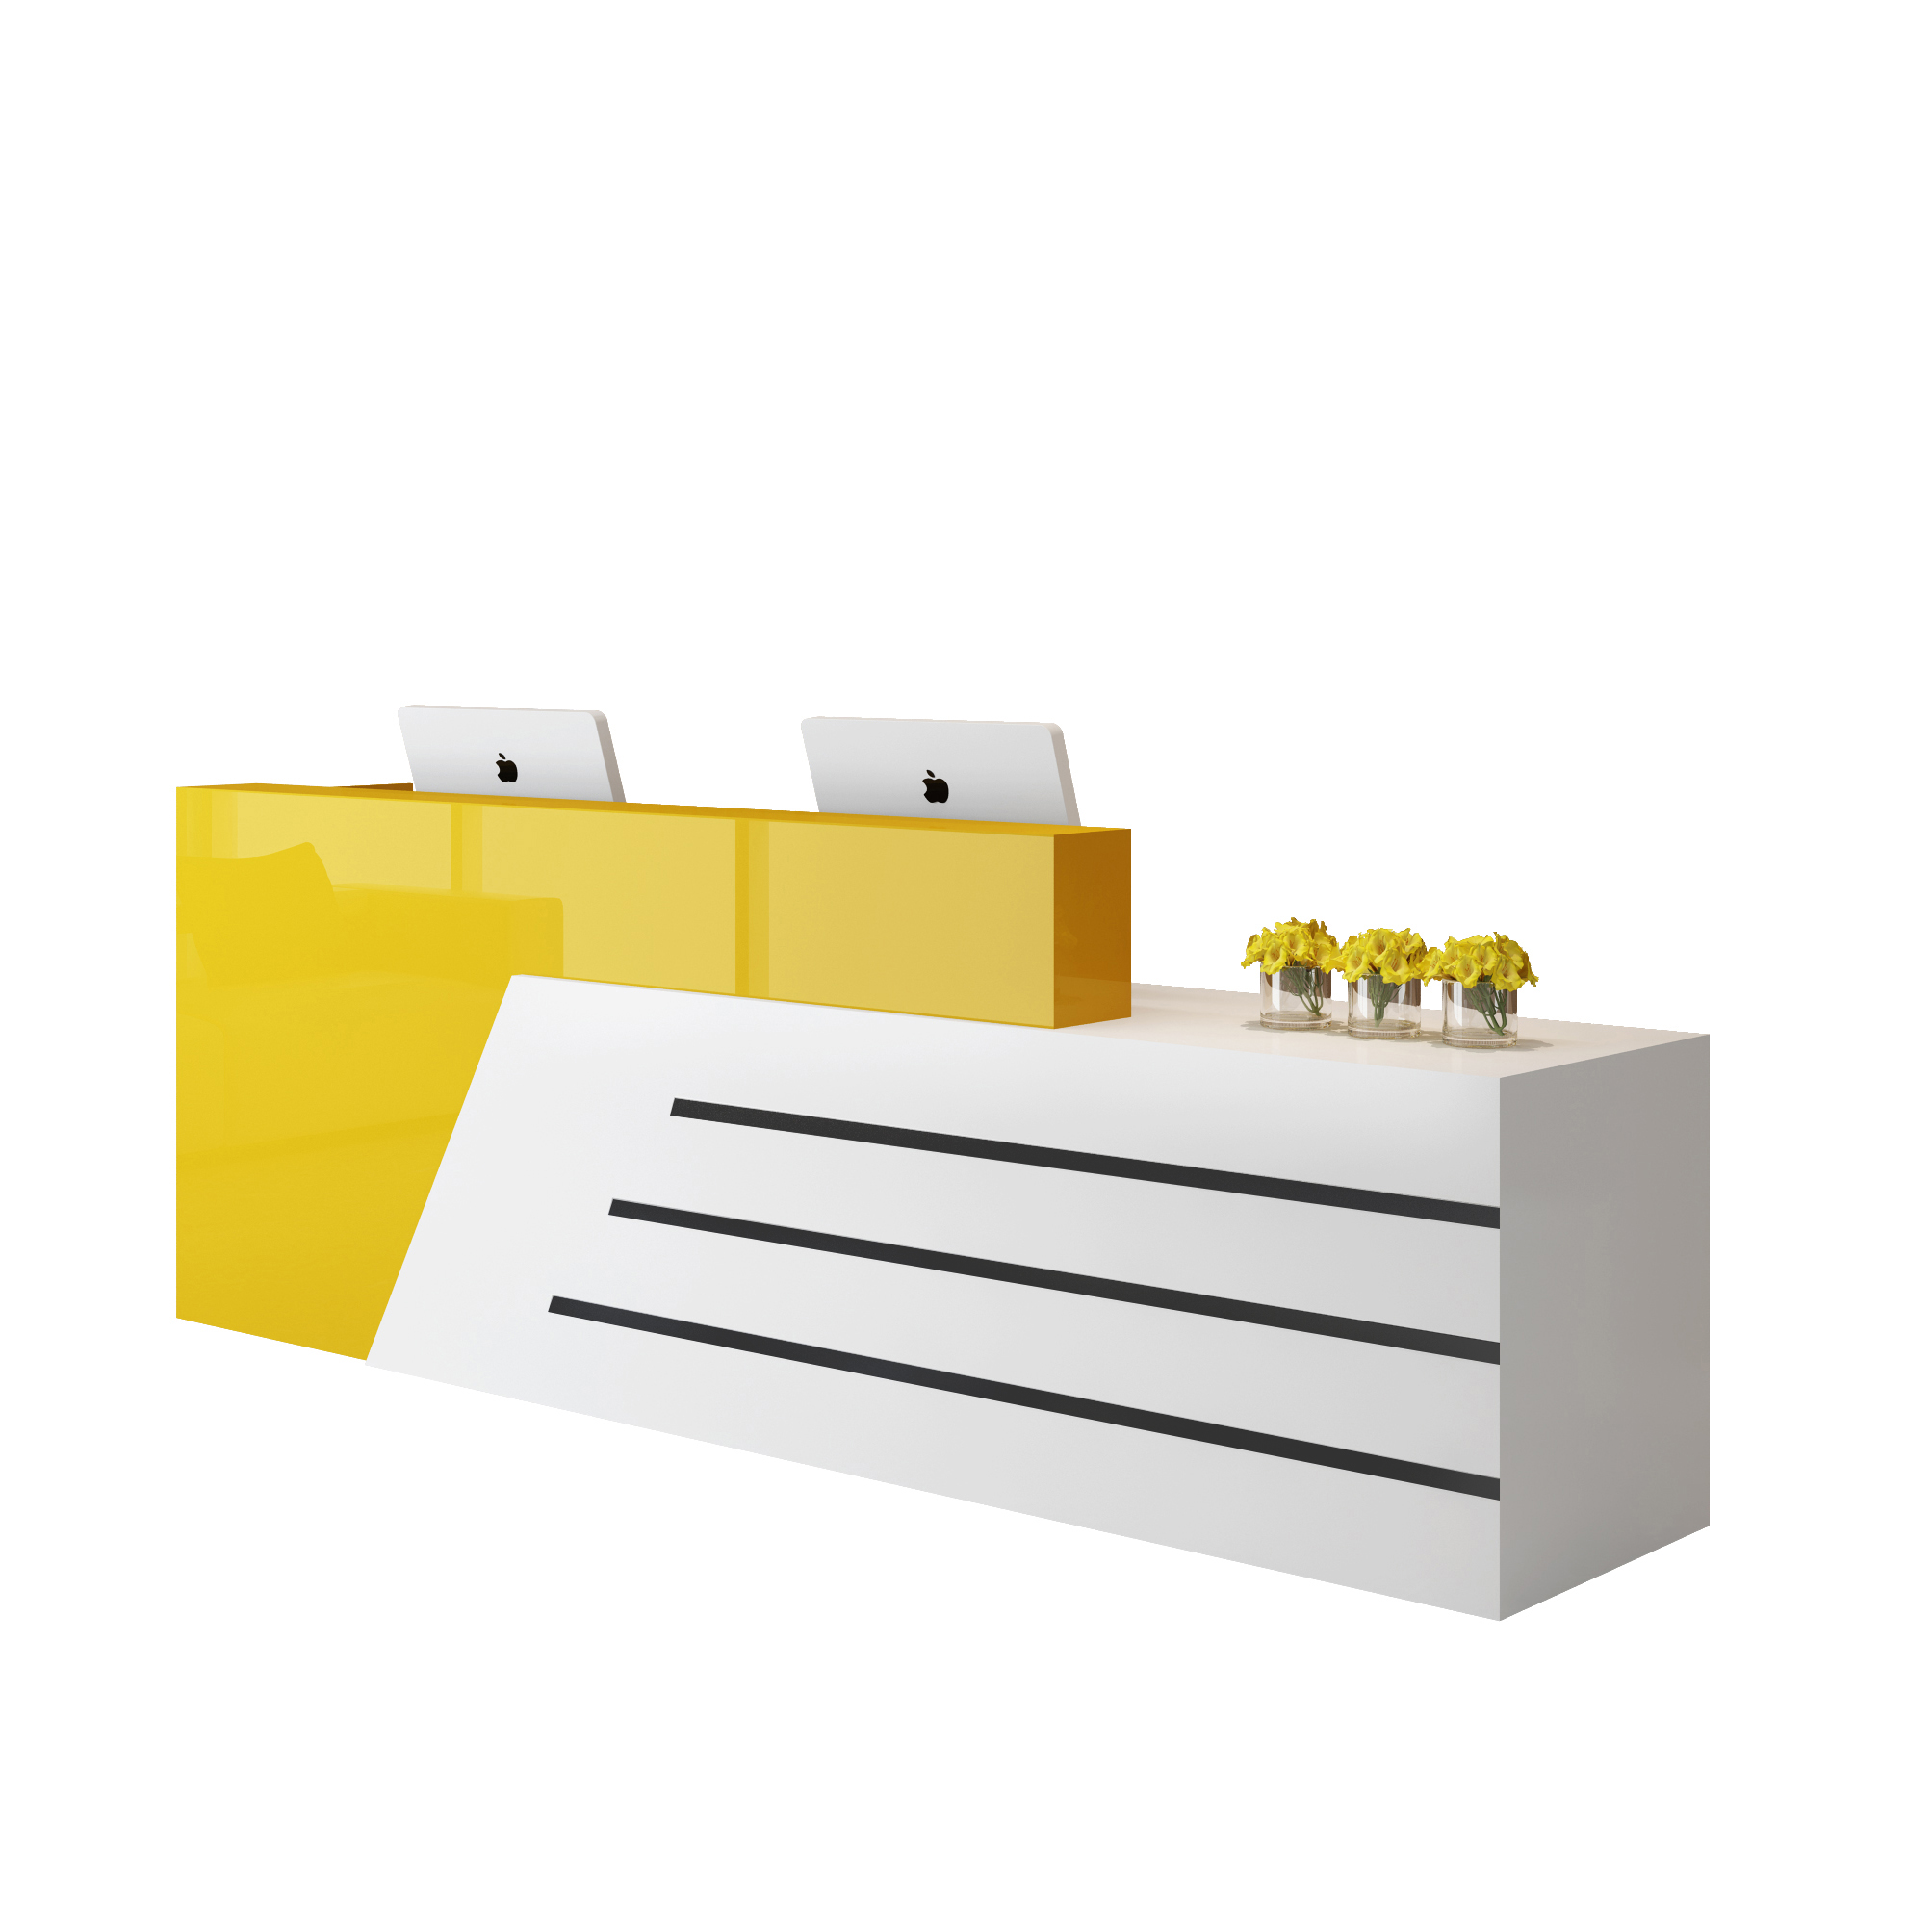 bar areas design ashton awesome beautiful receptionist reception home salon new fice for college desk of luxury sixth project form update